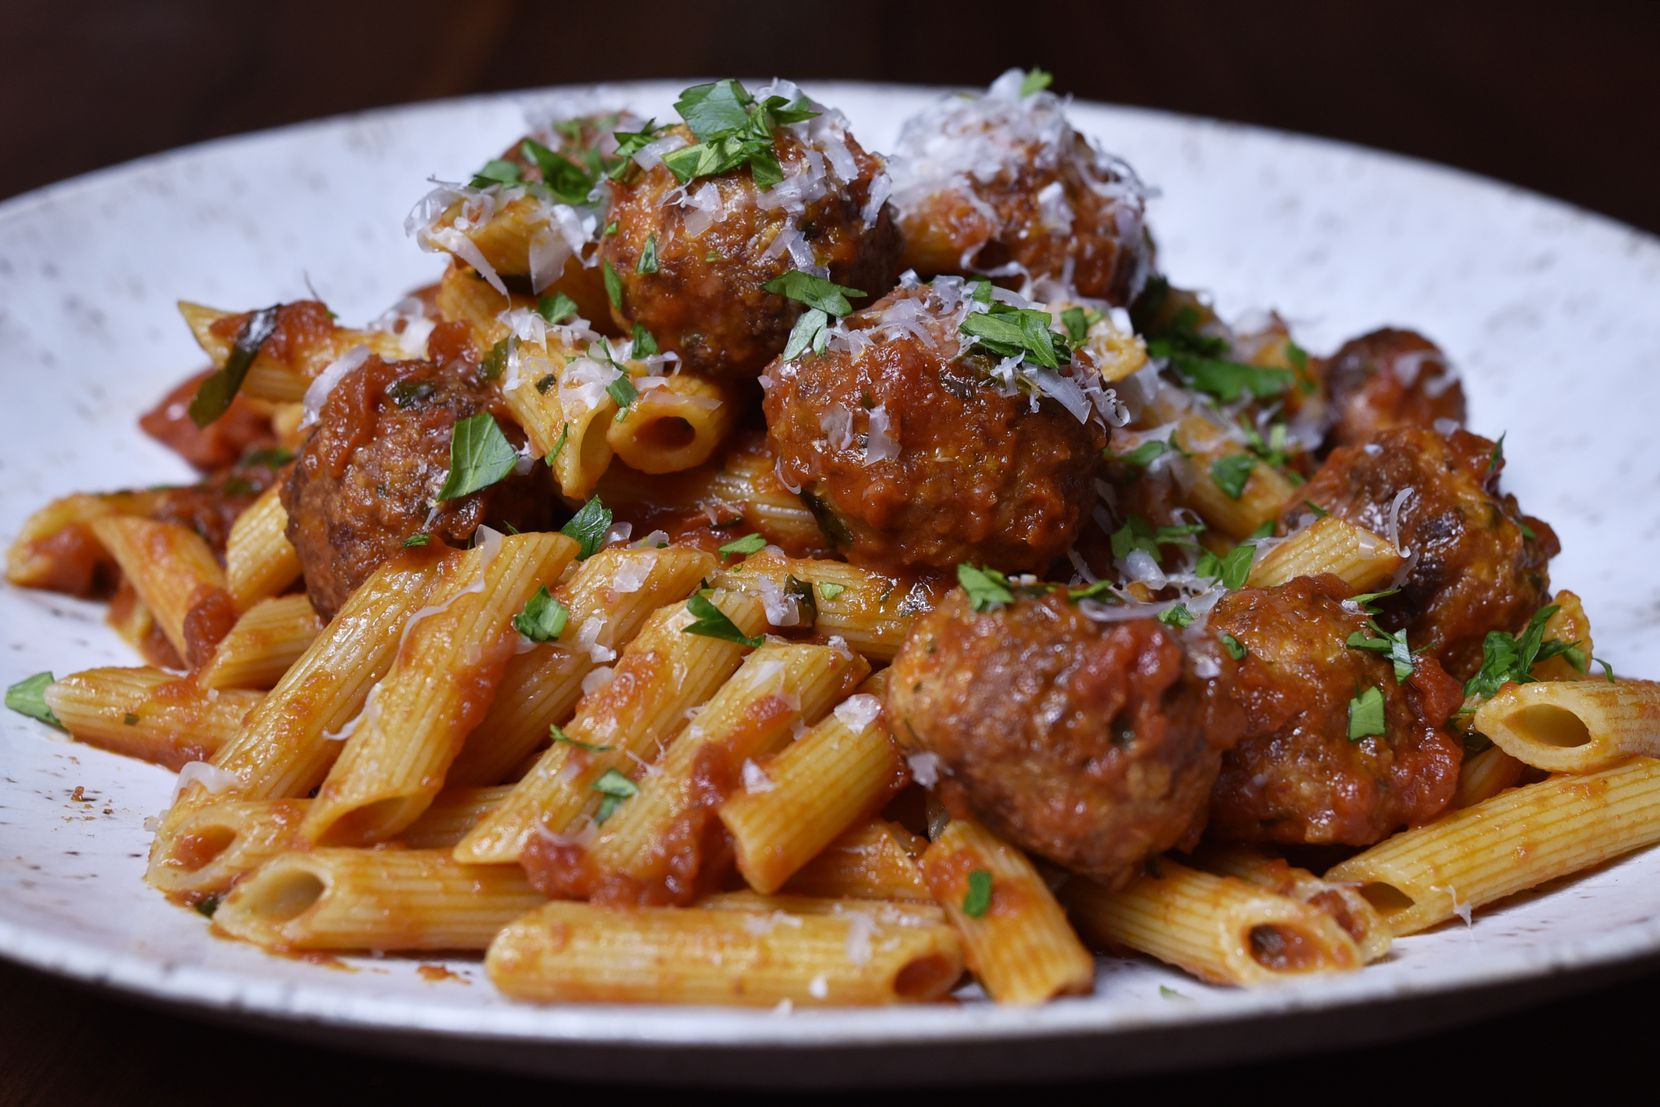 Pasta with meatballs and red sauce from Nonna Italian restaurant in Dallas, Jan. 13, 2020. Ben Torres/Special Contributor